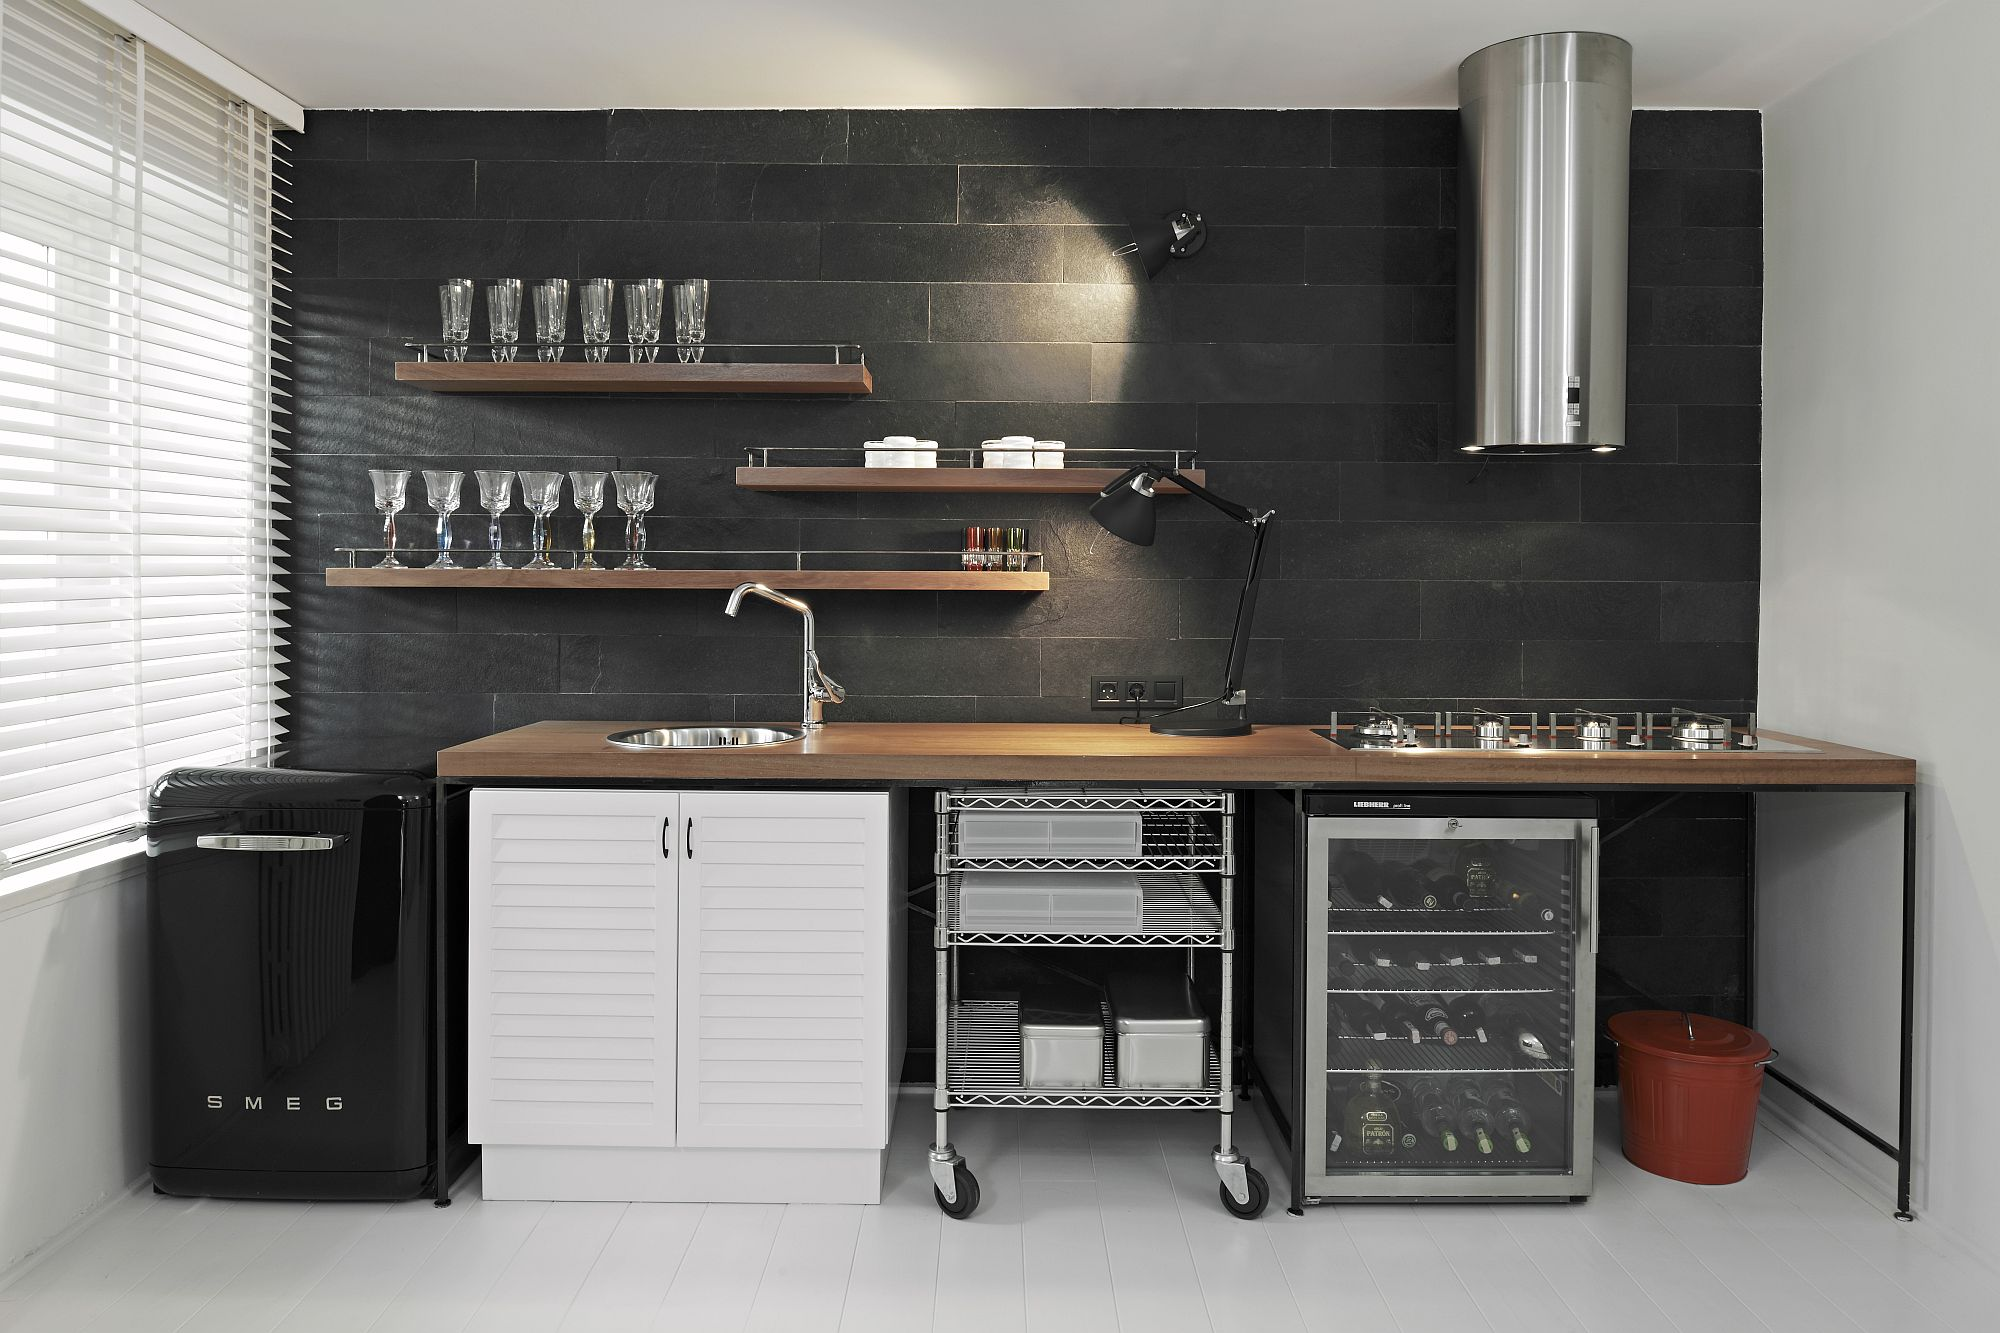 Small-kitchenette-with-a-small-Smeg-refrigerator